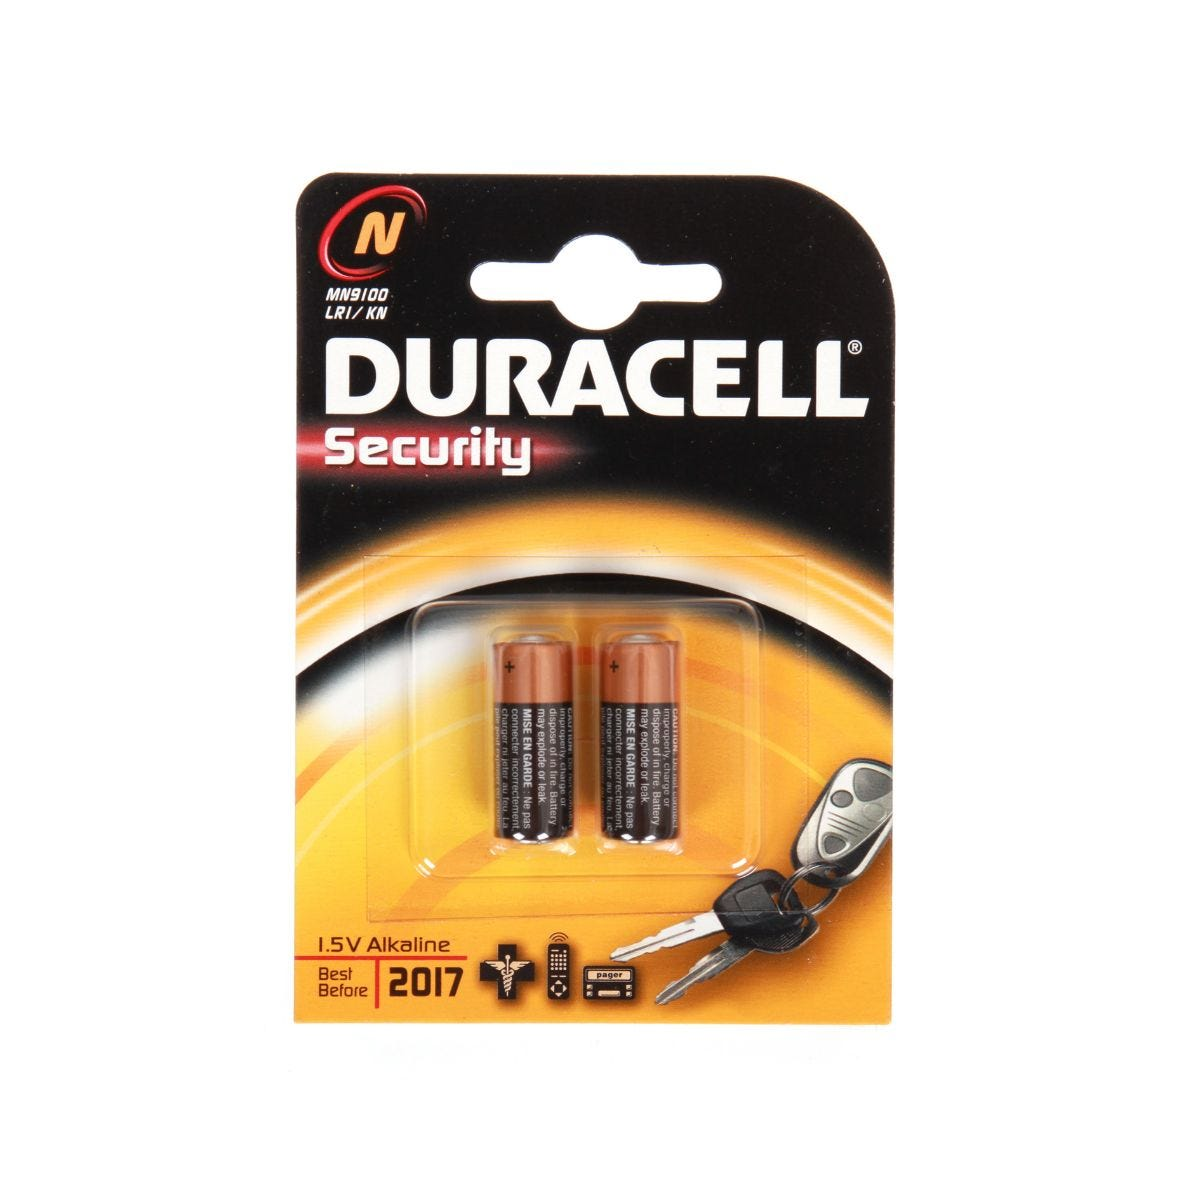 Image of Duracell Security N Pack of 2